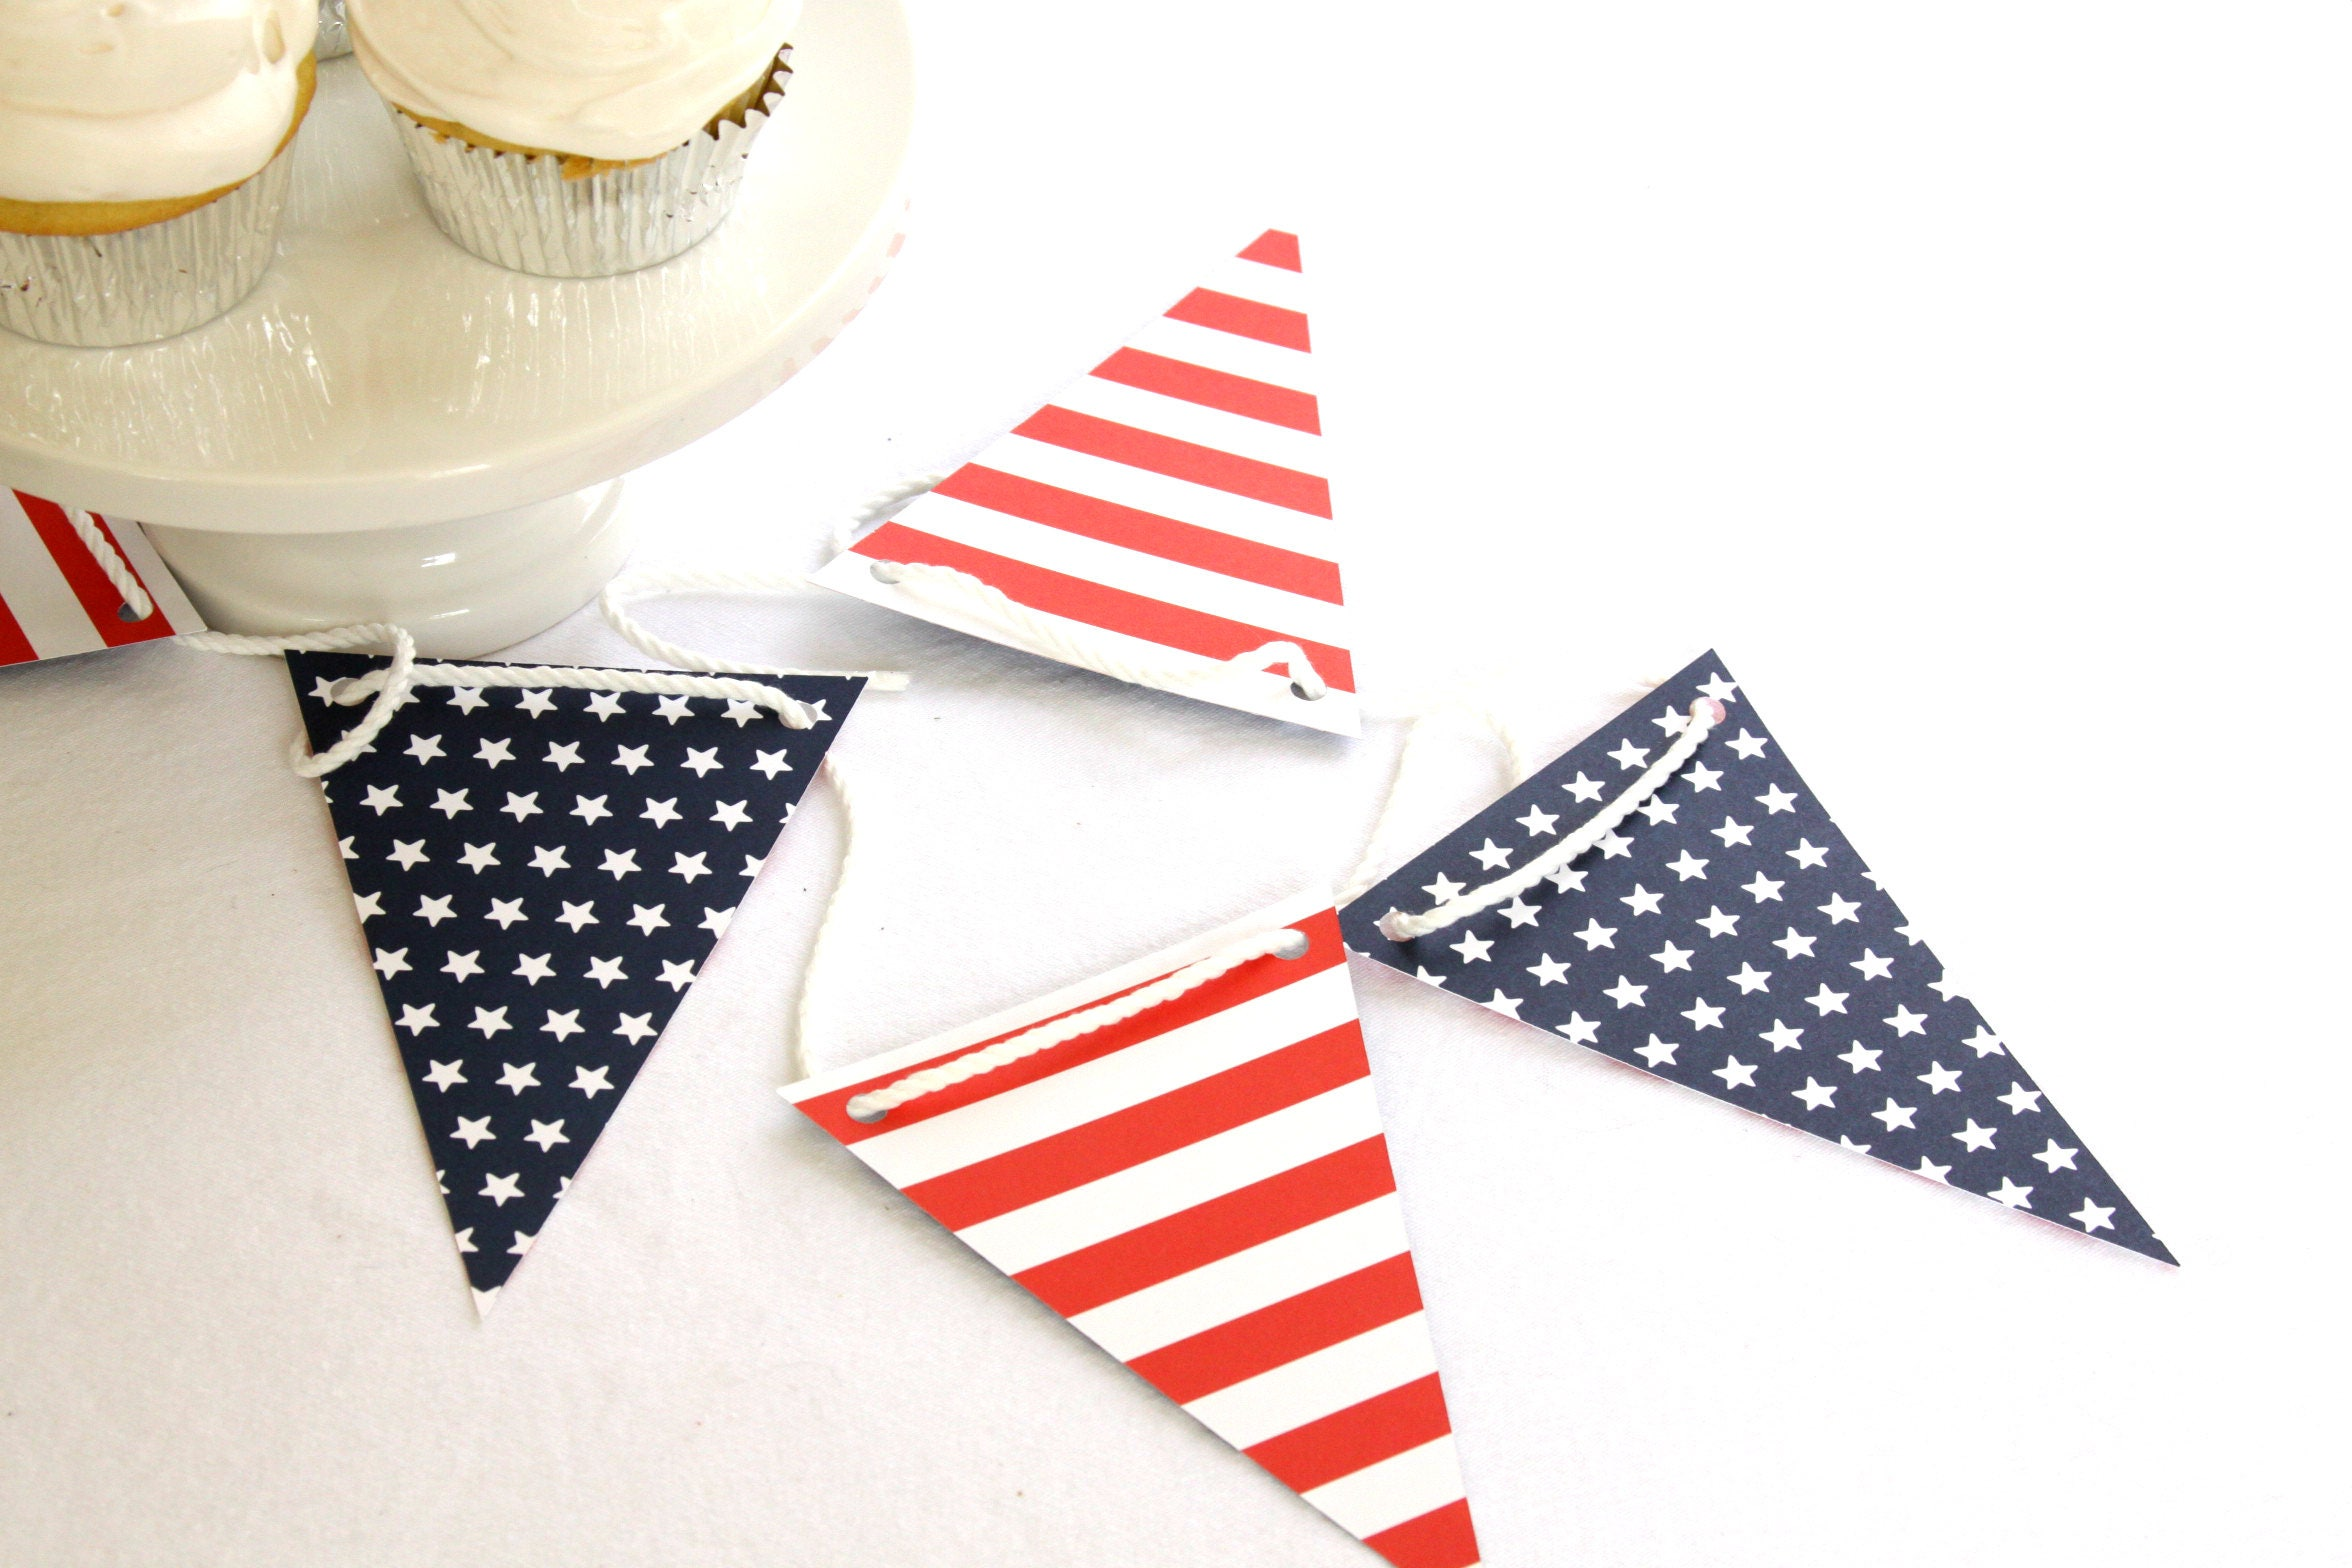 Couples Shower Ideas, Patriotic Red White and Blue Bunting, Cookout Banner,  Backyard BBQ Decorations, Americana Picnic Supplies, Baby Q